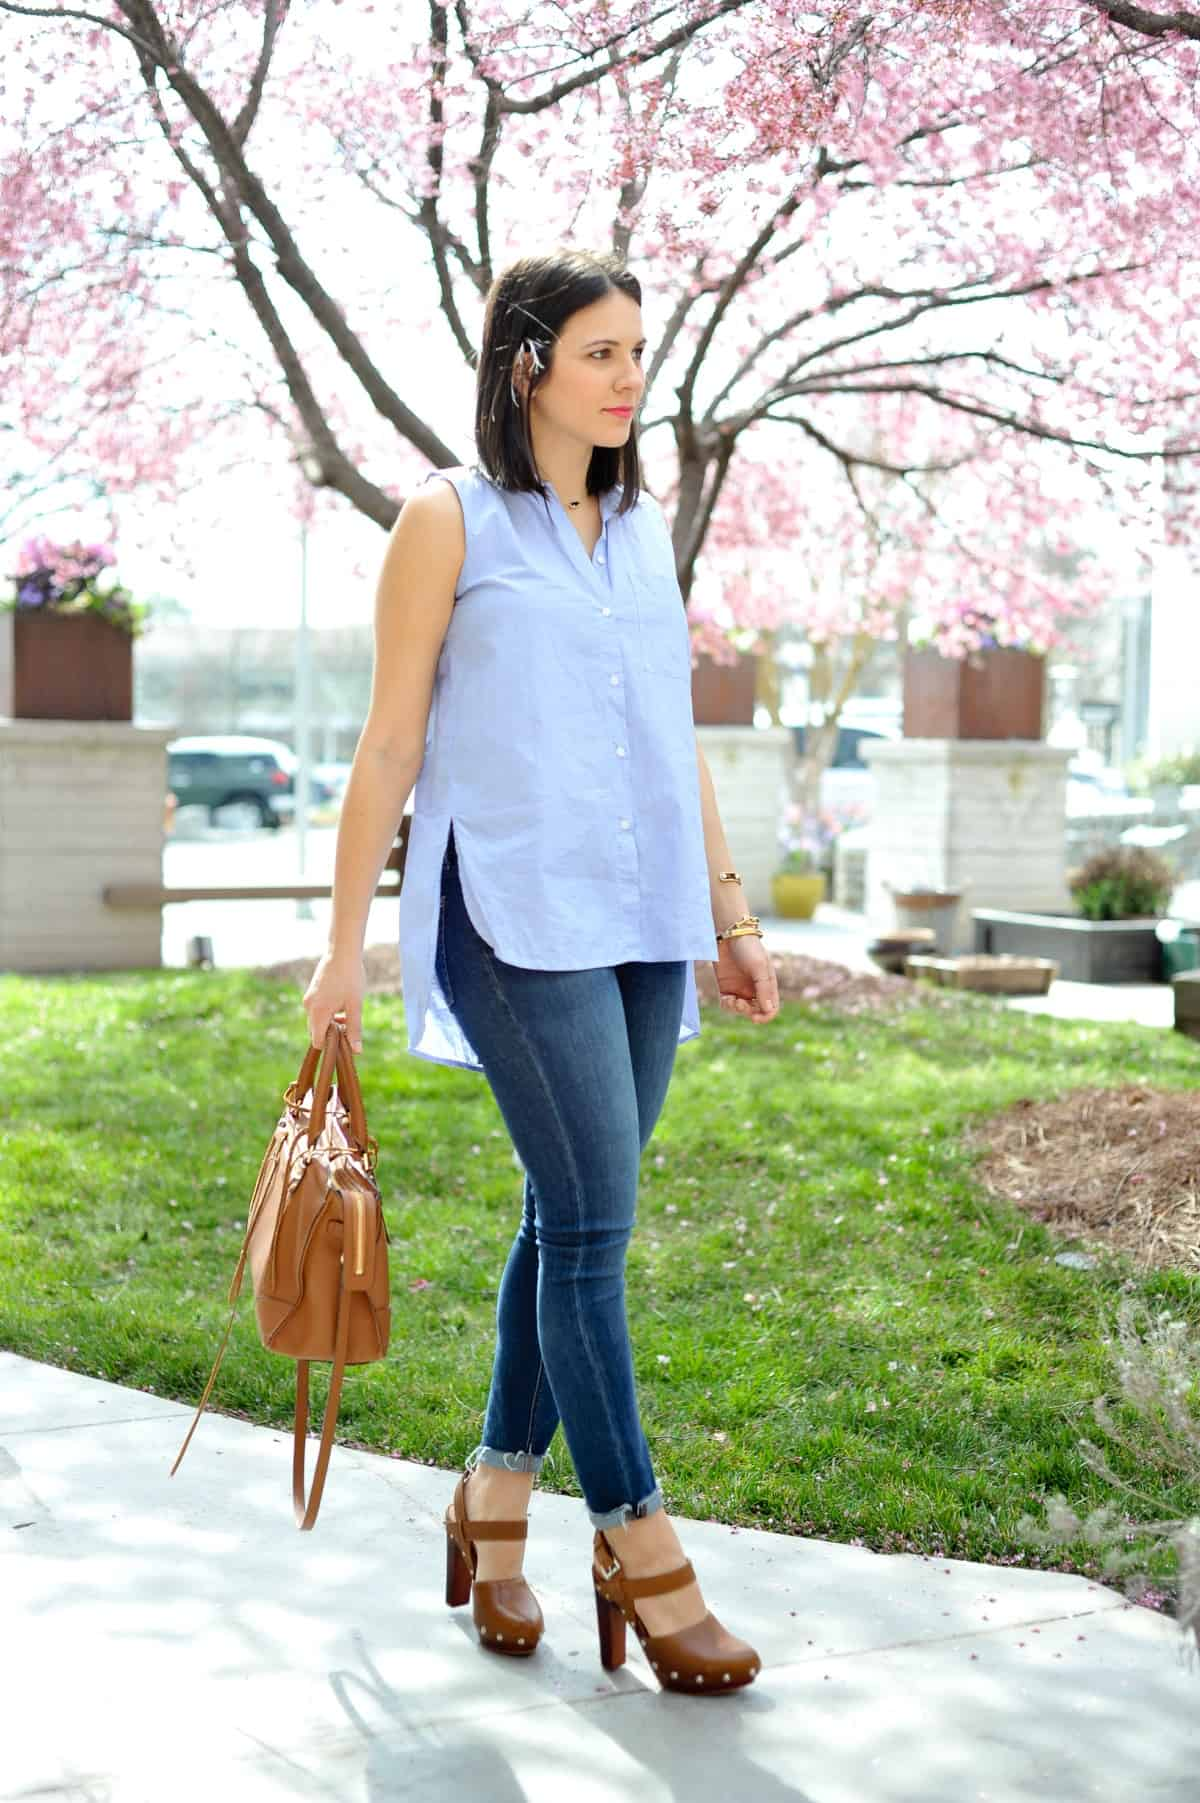 Vince Camuto Elric Shoe for spring - My Style Vita - @mystylevita - 18